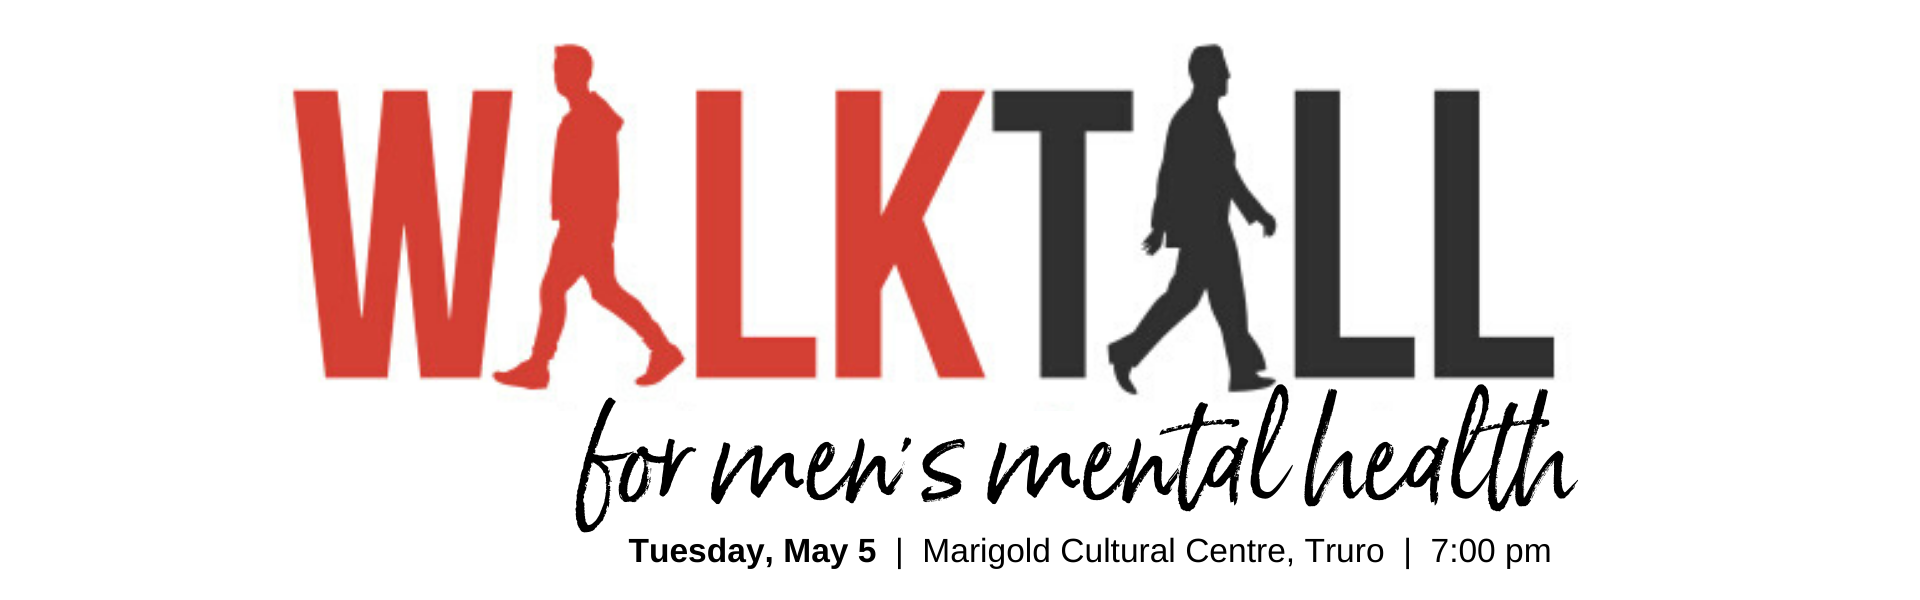 Walk Tall for Men's Mental Health returns for second year